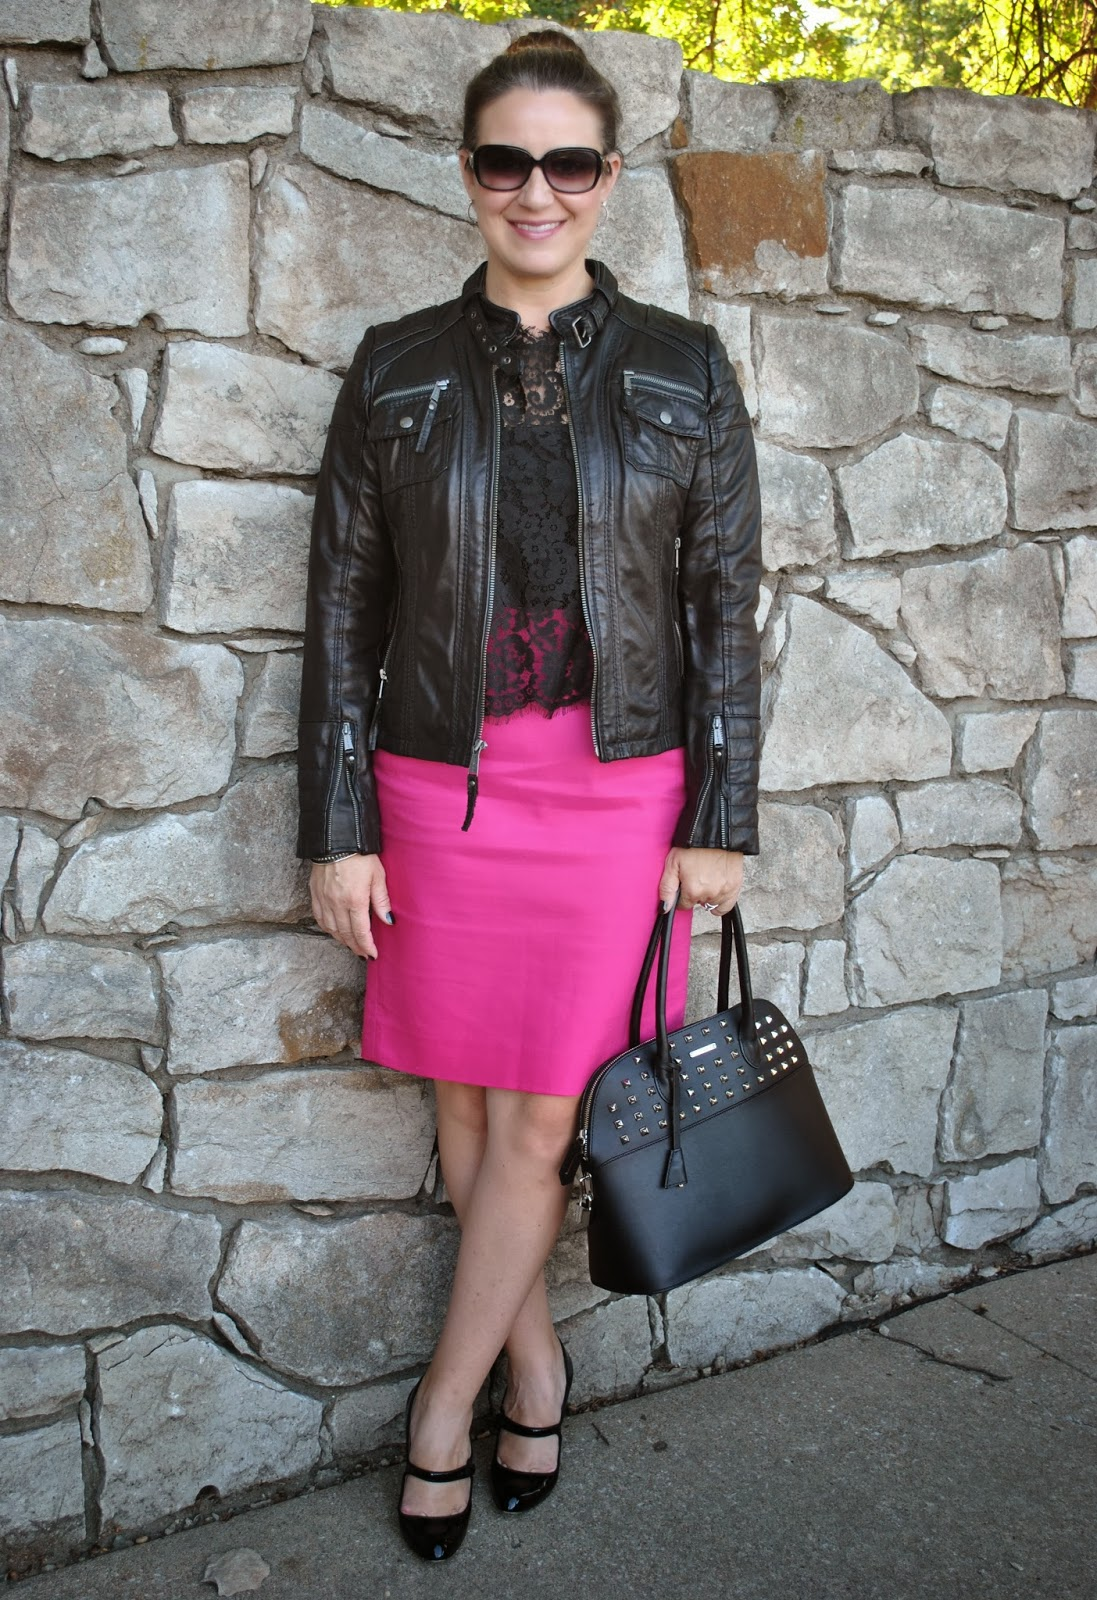 http://akstylemyway.blogspot.com/2013/09/leather-lace.html